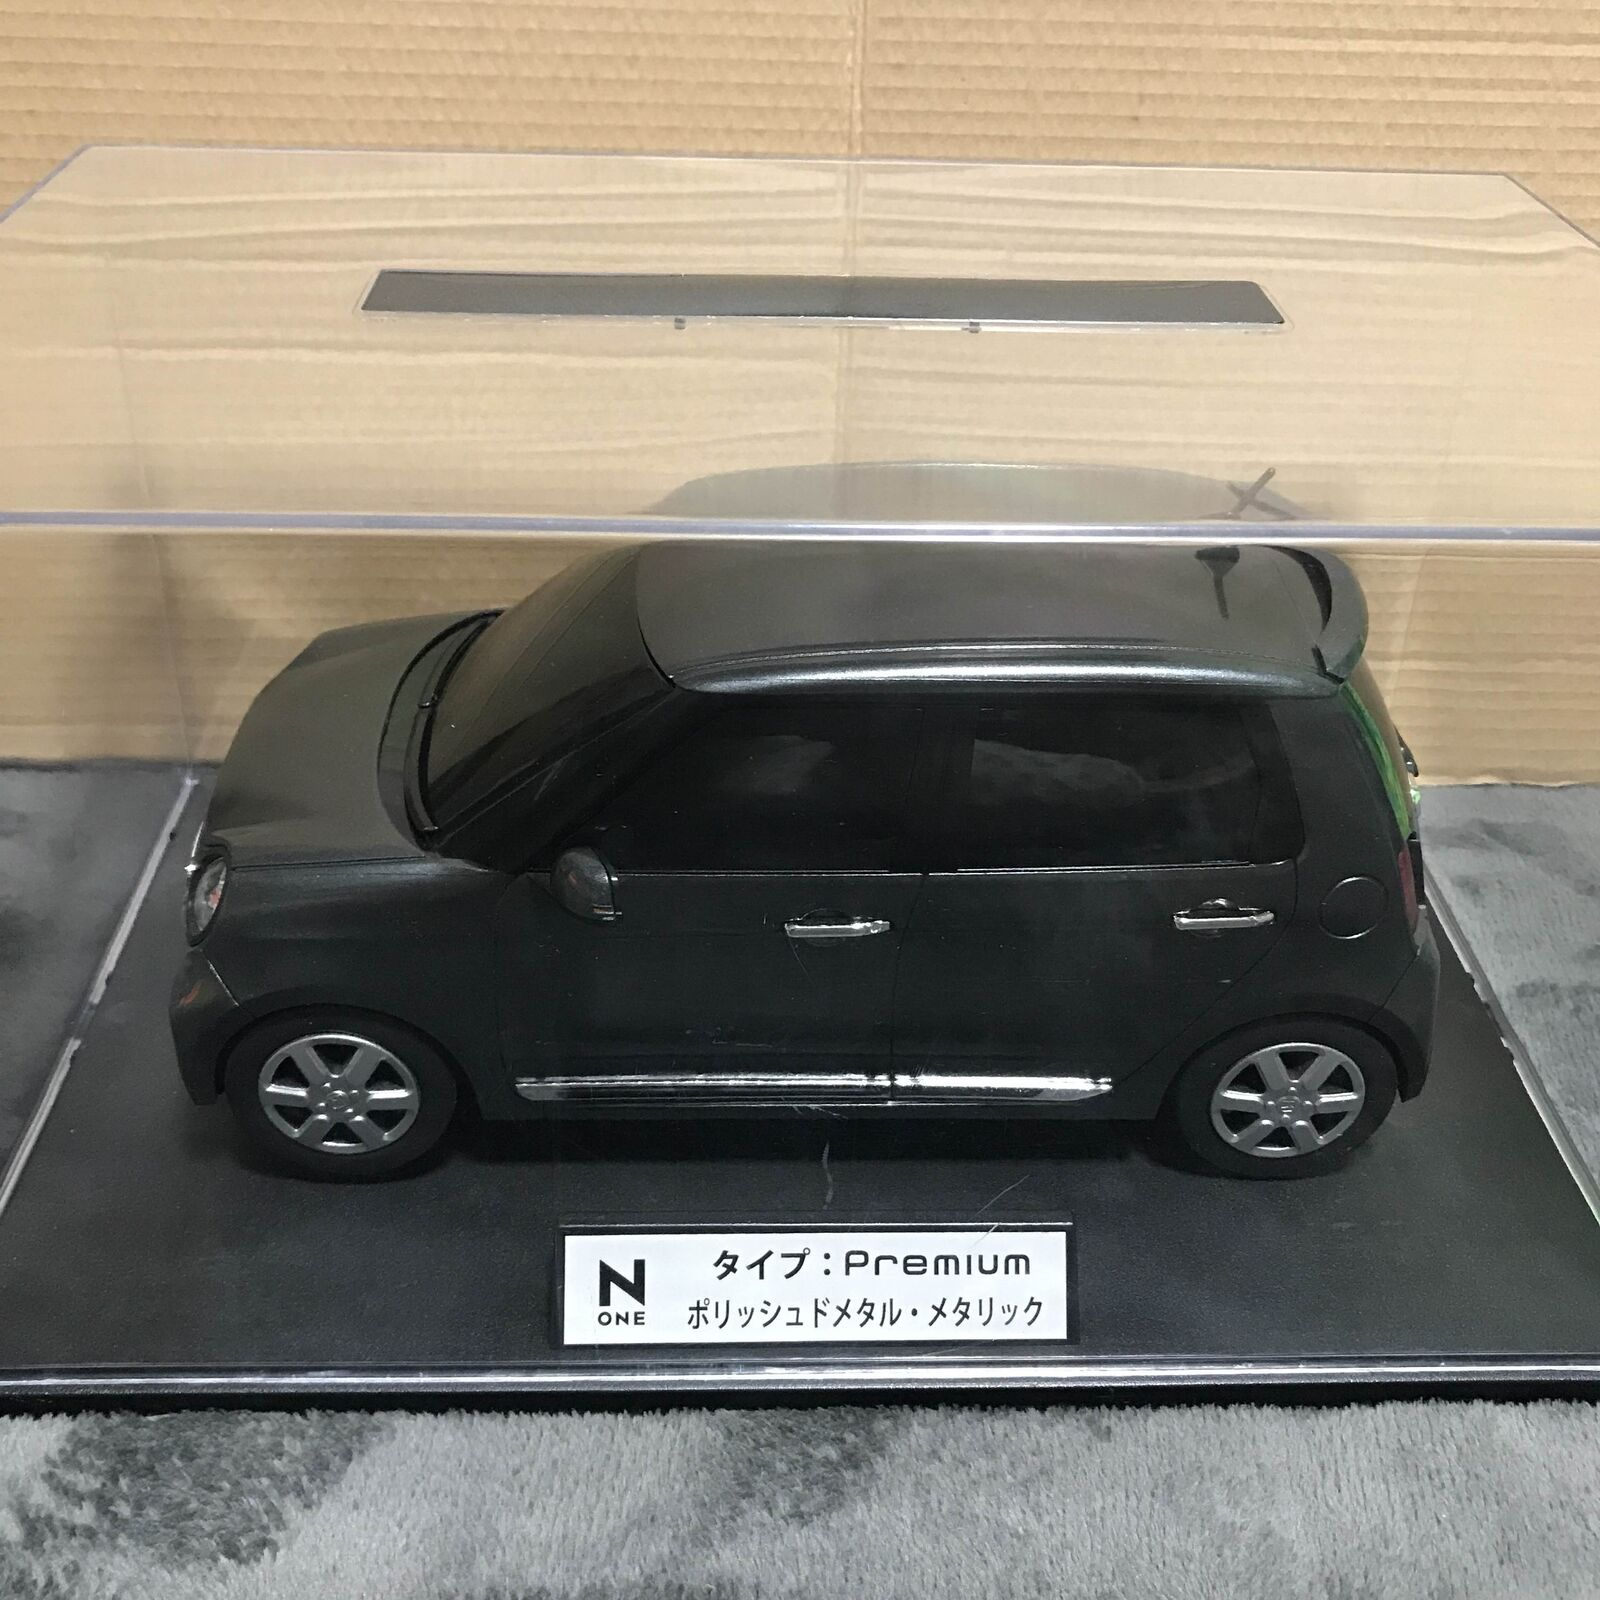 Honda None premium store Farbe sample for rare from JAPAN